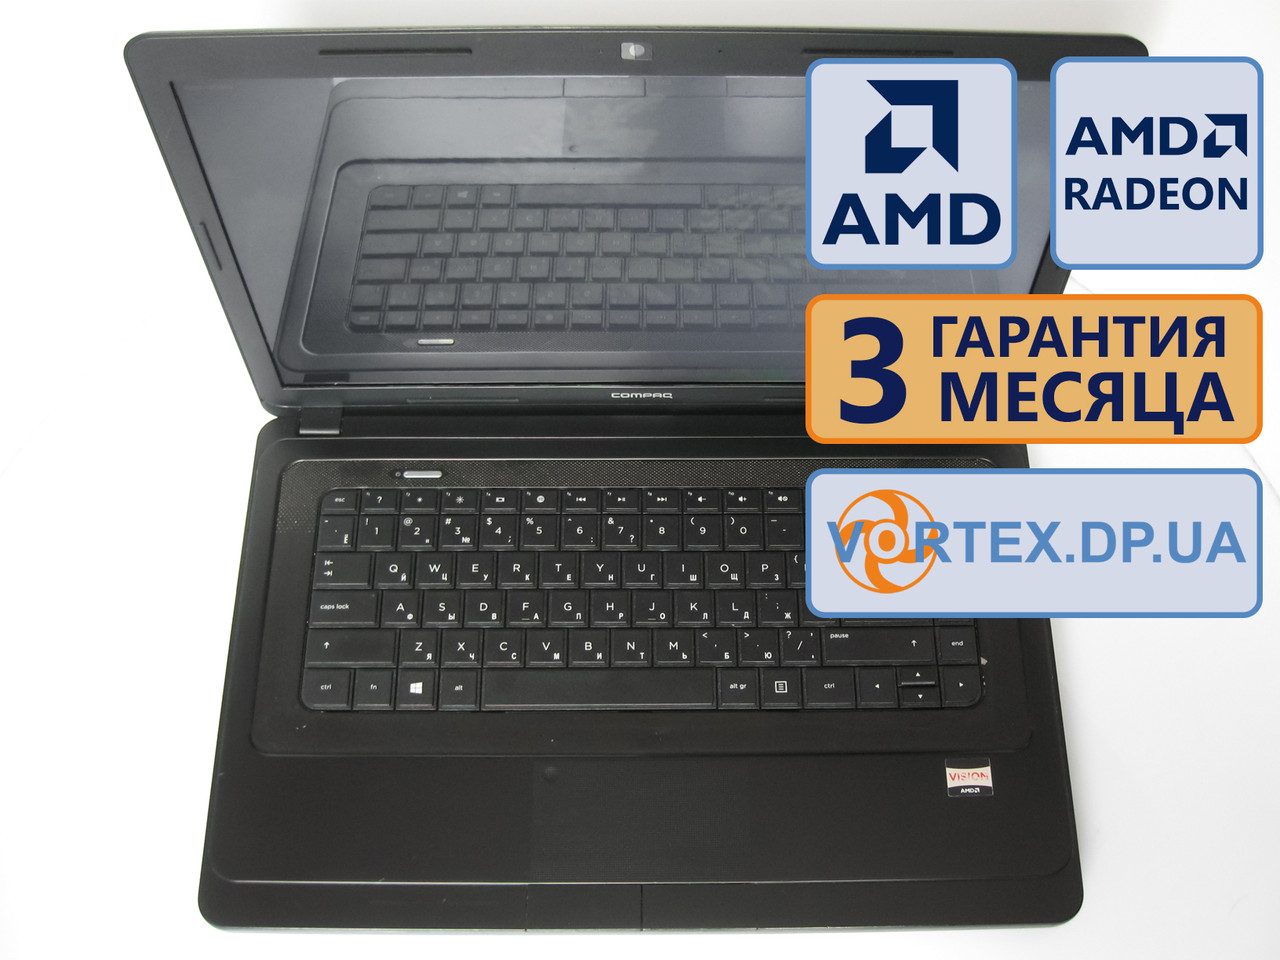 Ноутбук HP Compaq CQ57 15.6 (1366x768) / AMD E300 (2x1.3GHz) / RAM 2Gb